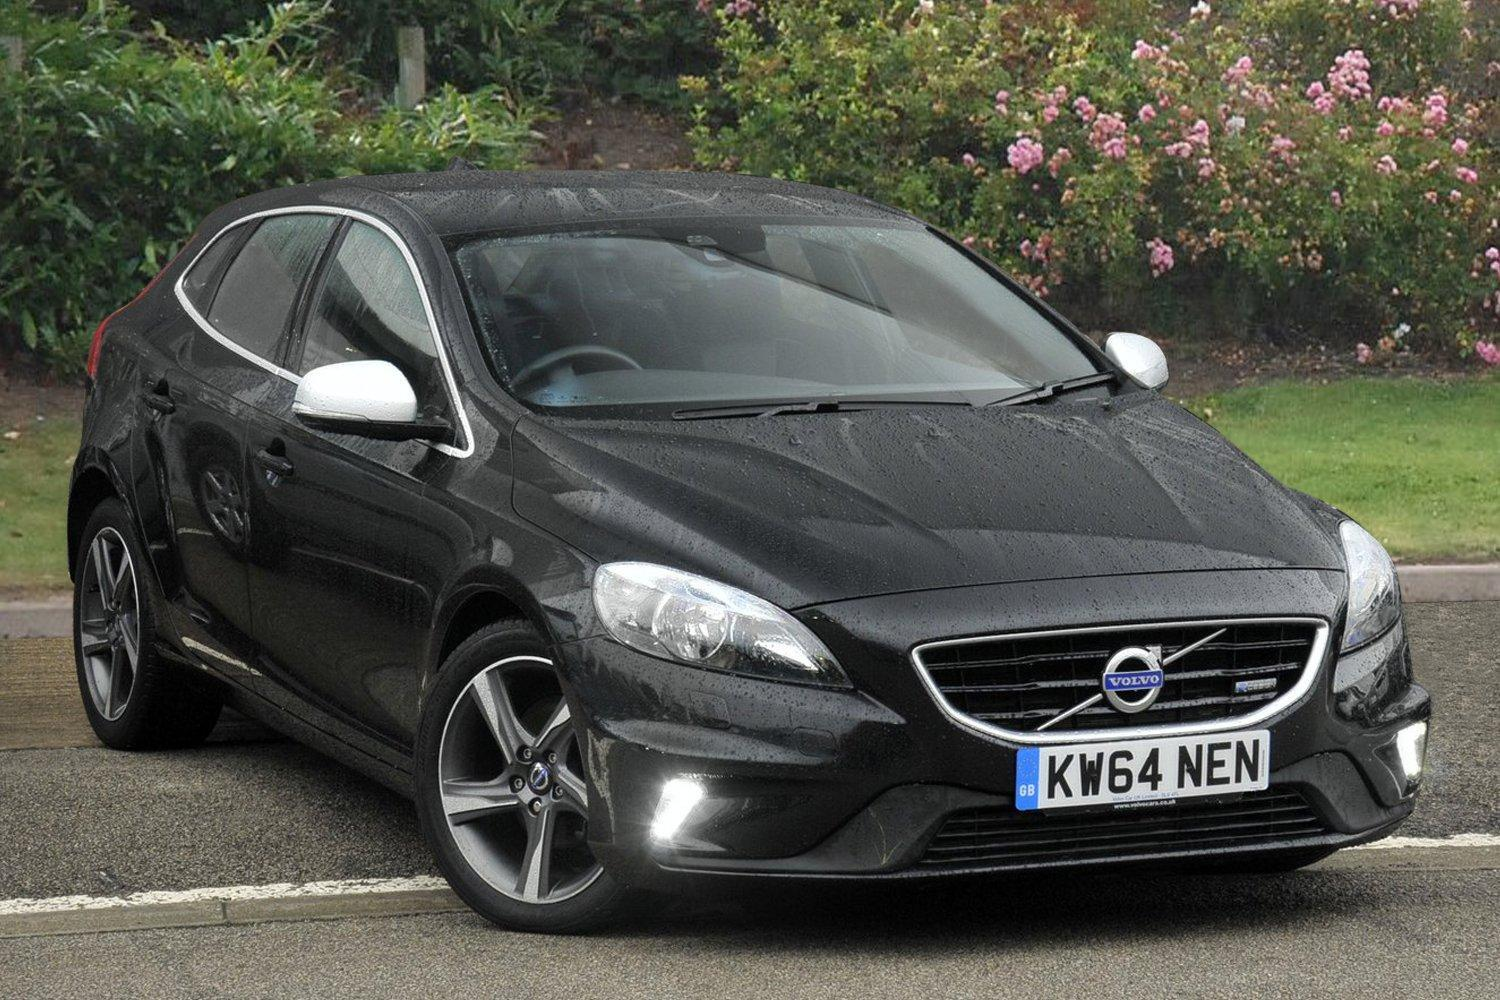 used volvo v40 d2 r design nav 5dr diesel hatchback for sale newcastle infiniti. Black Bedroom Furniture Sets. Home Design Ideas